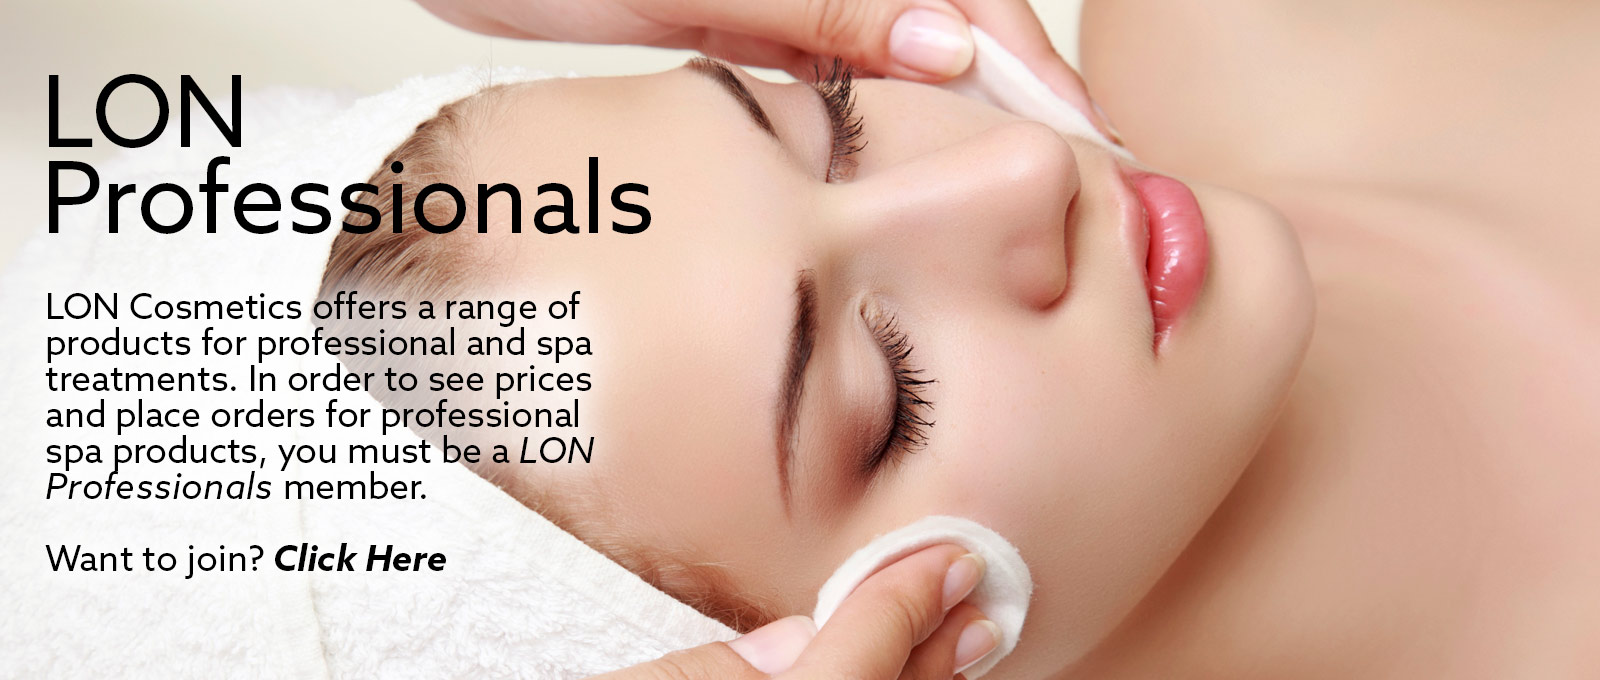 LON Cosmetics offers a range of products for professional and spa treatments. In order to see prices and place orders for professional spa products, you must be a LON Professional member.